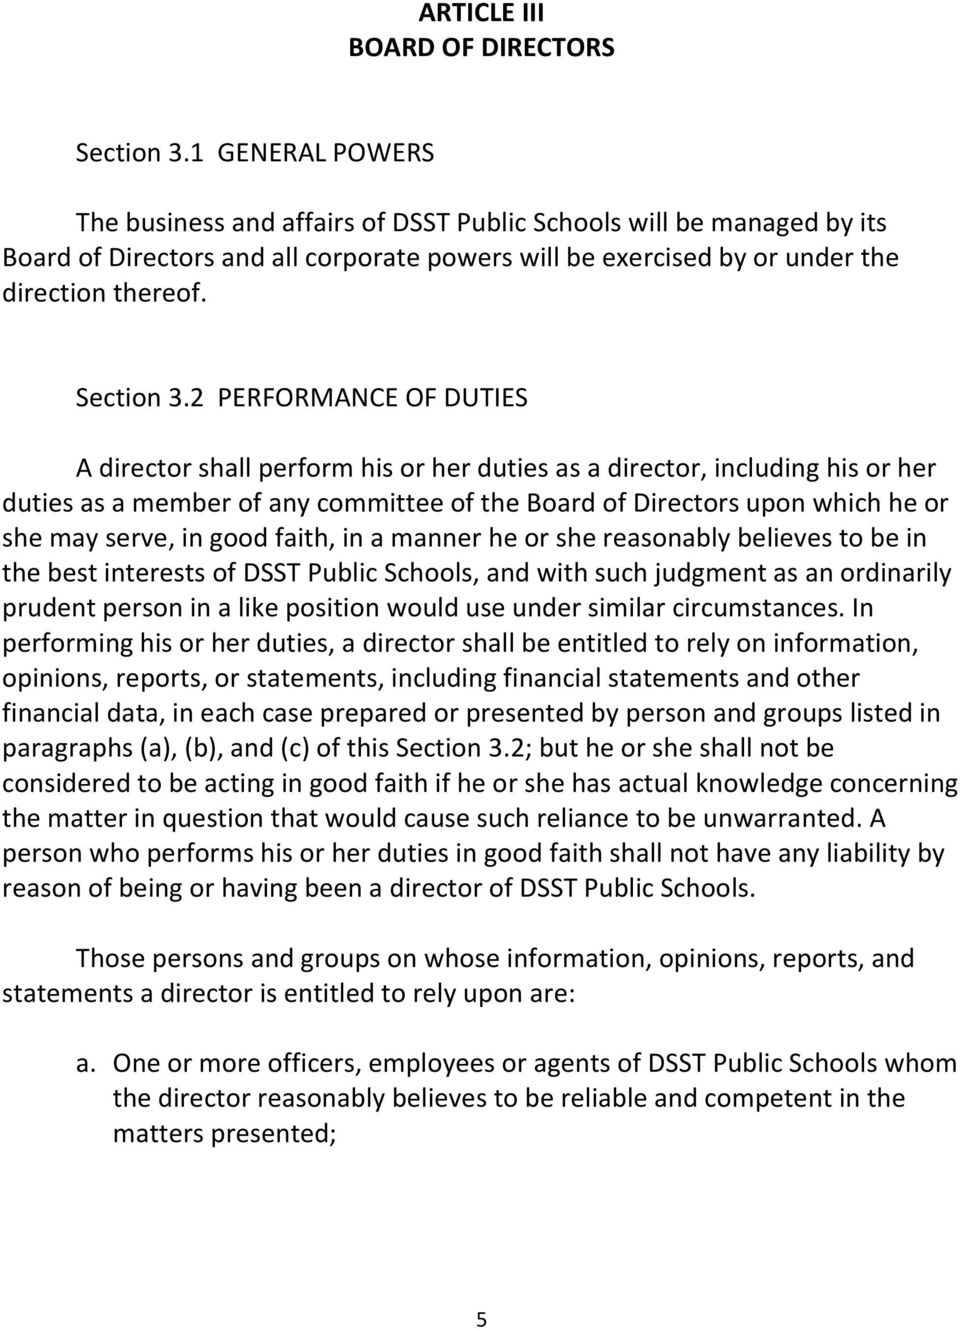 2 PERFORMANCE OF DUTIES A director shall perform his or her duties as a director, including his or her duties as a member of any committee of the Board of Directors upon which he or she may serve, in